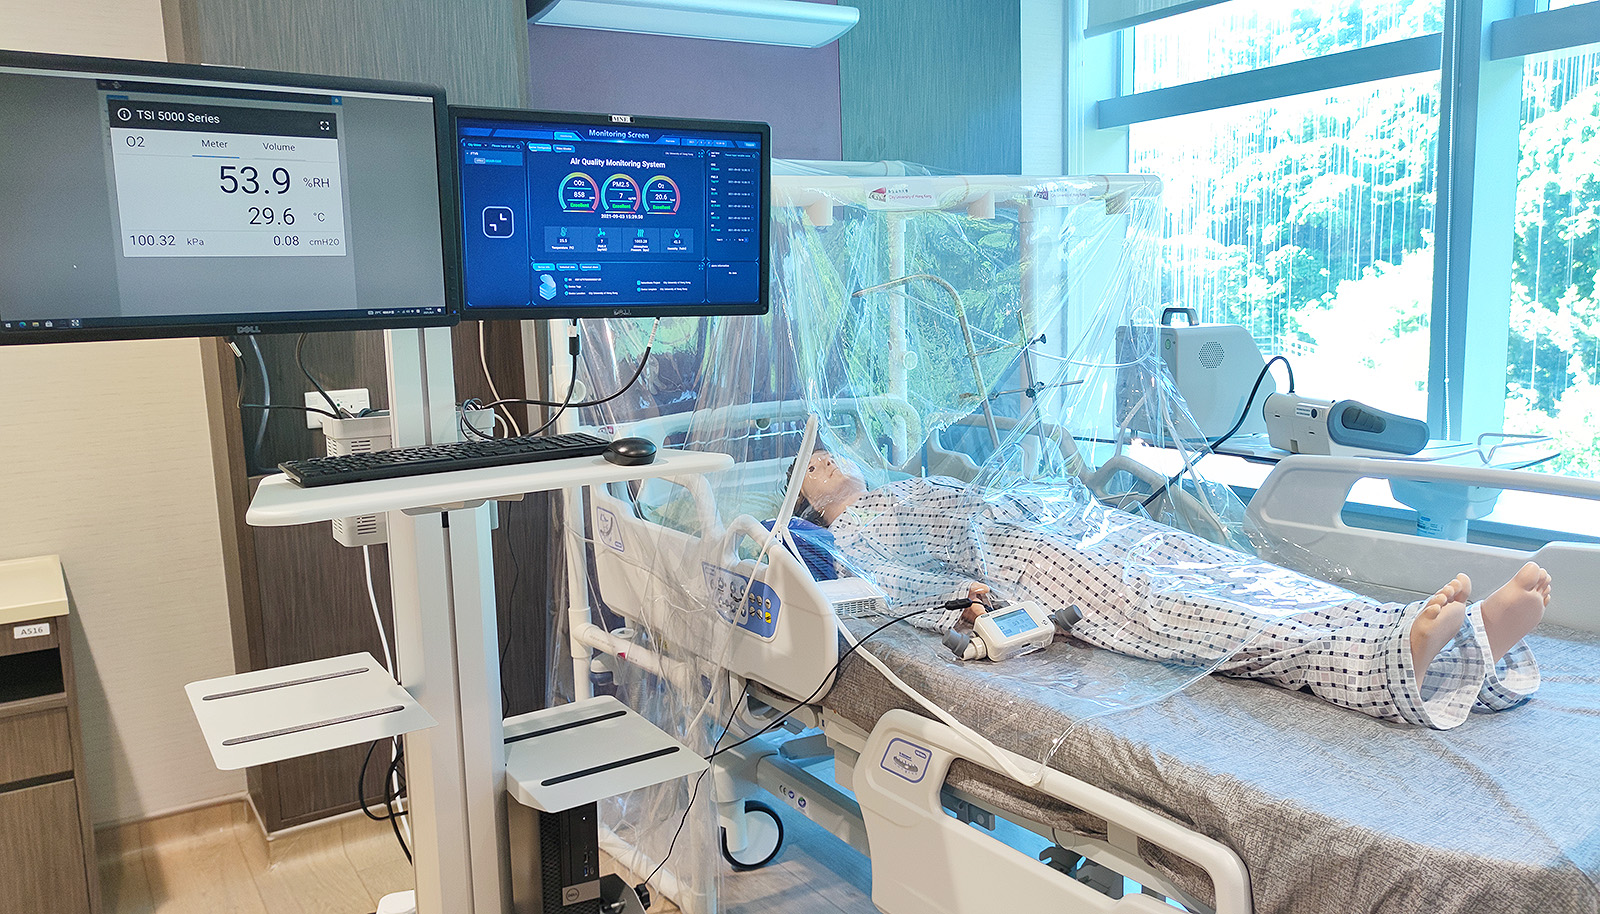 The fast-track ventilation system is being tested in Gleneagles Hospital Hong Kong. Pressure, flowrate, humidity, oxygen and carbon dioxide levels are automatically monitored.